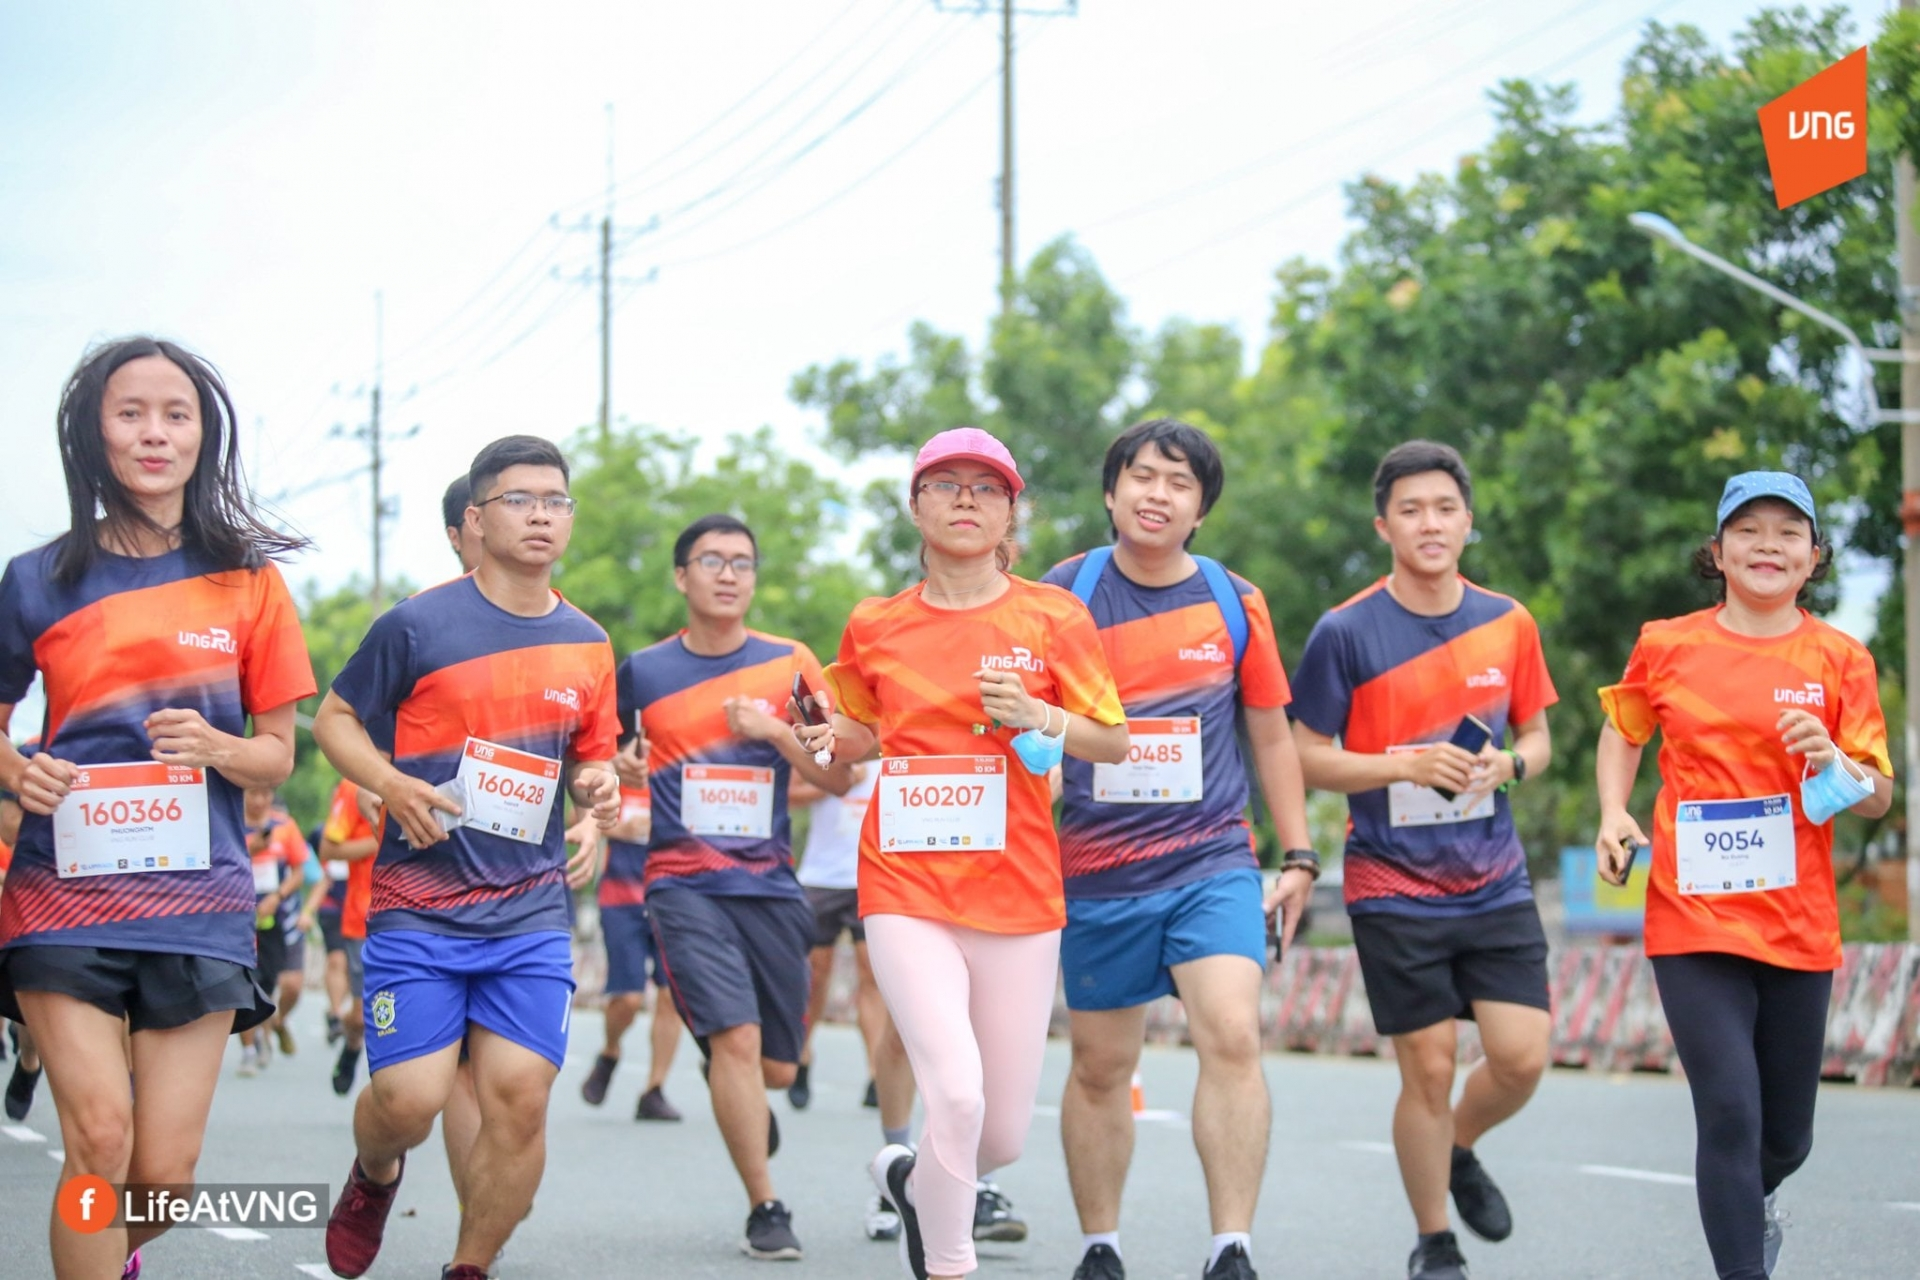 UpRace: Nearly 115,000 runners raises USD 129,100 for health, environment and education